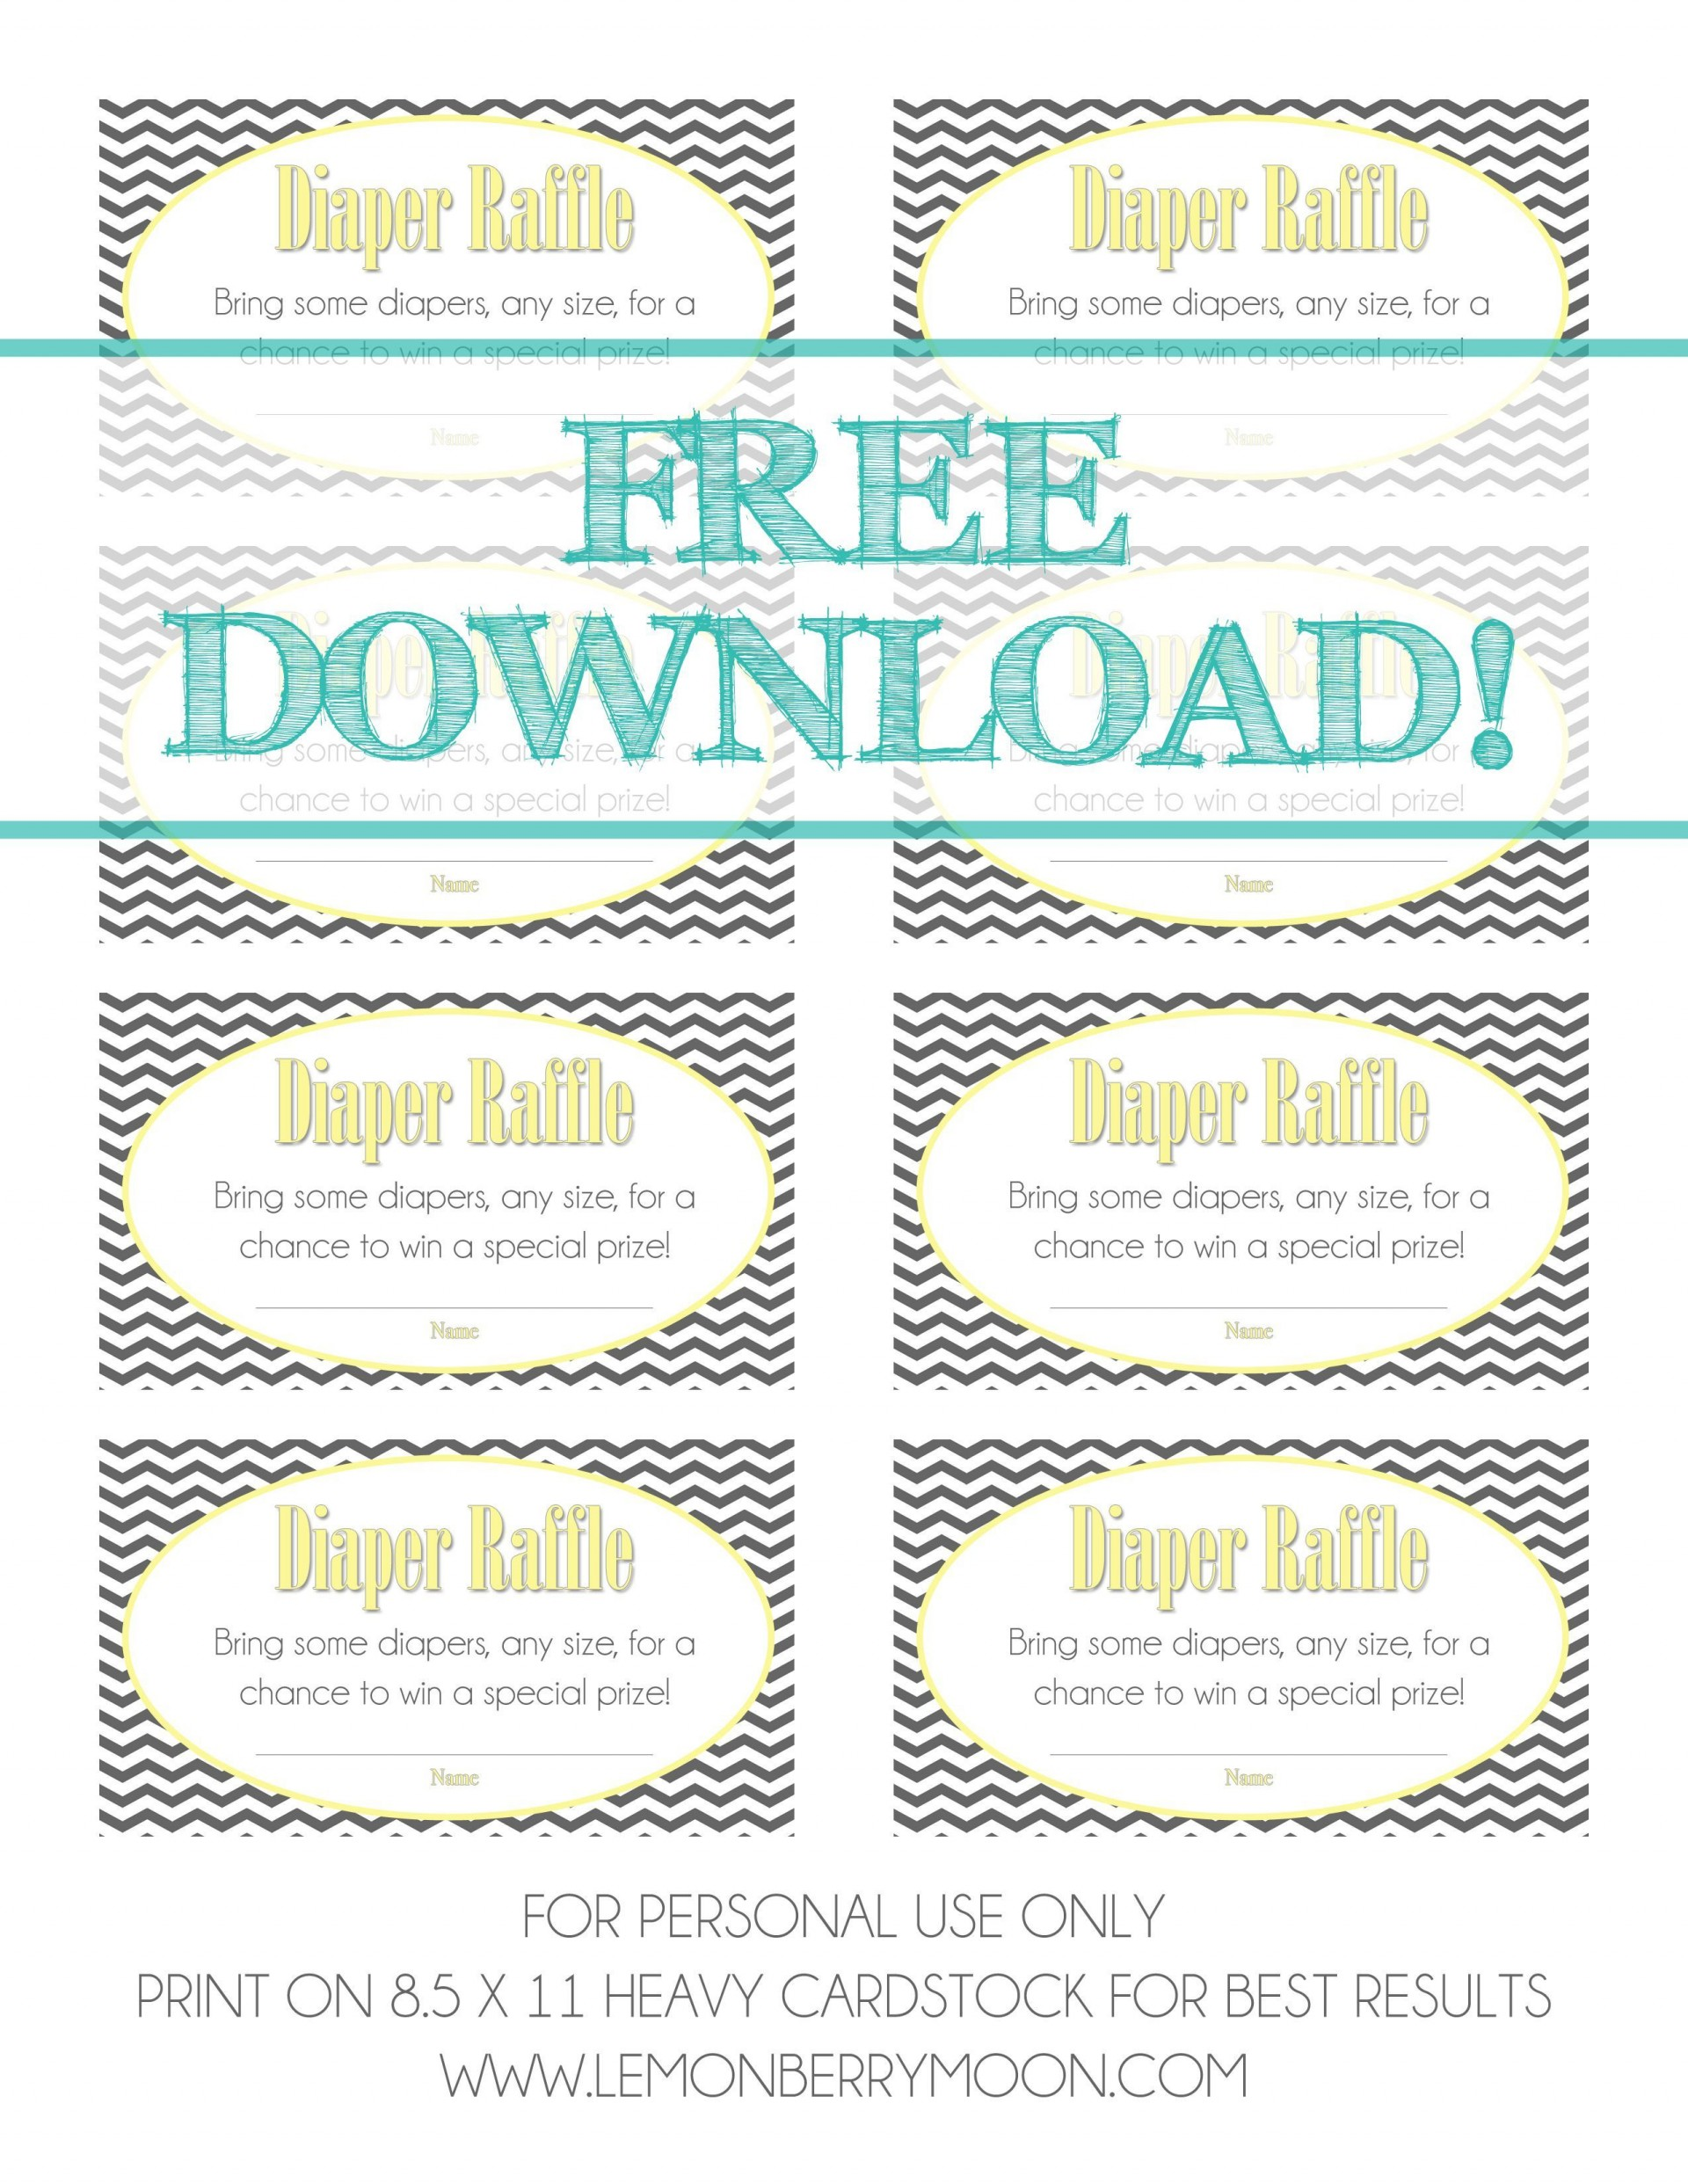 002 Remarkable Diaper Raffle Ticket Template Highest Quality  Free Printable Download1920